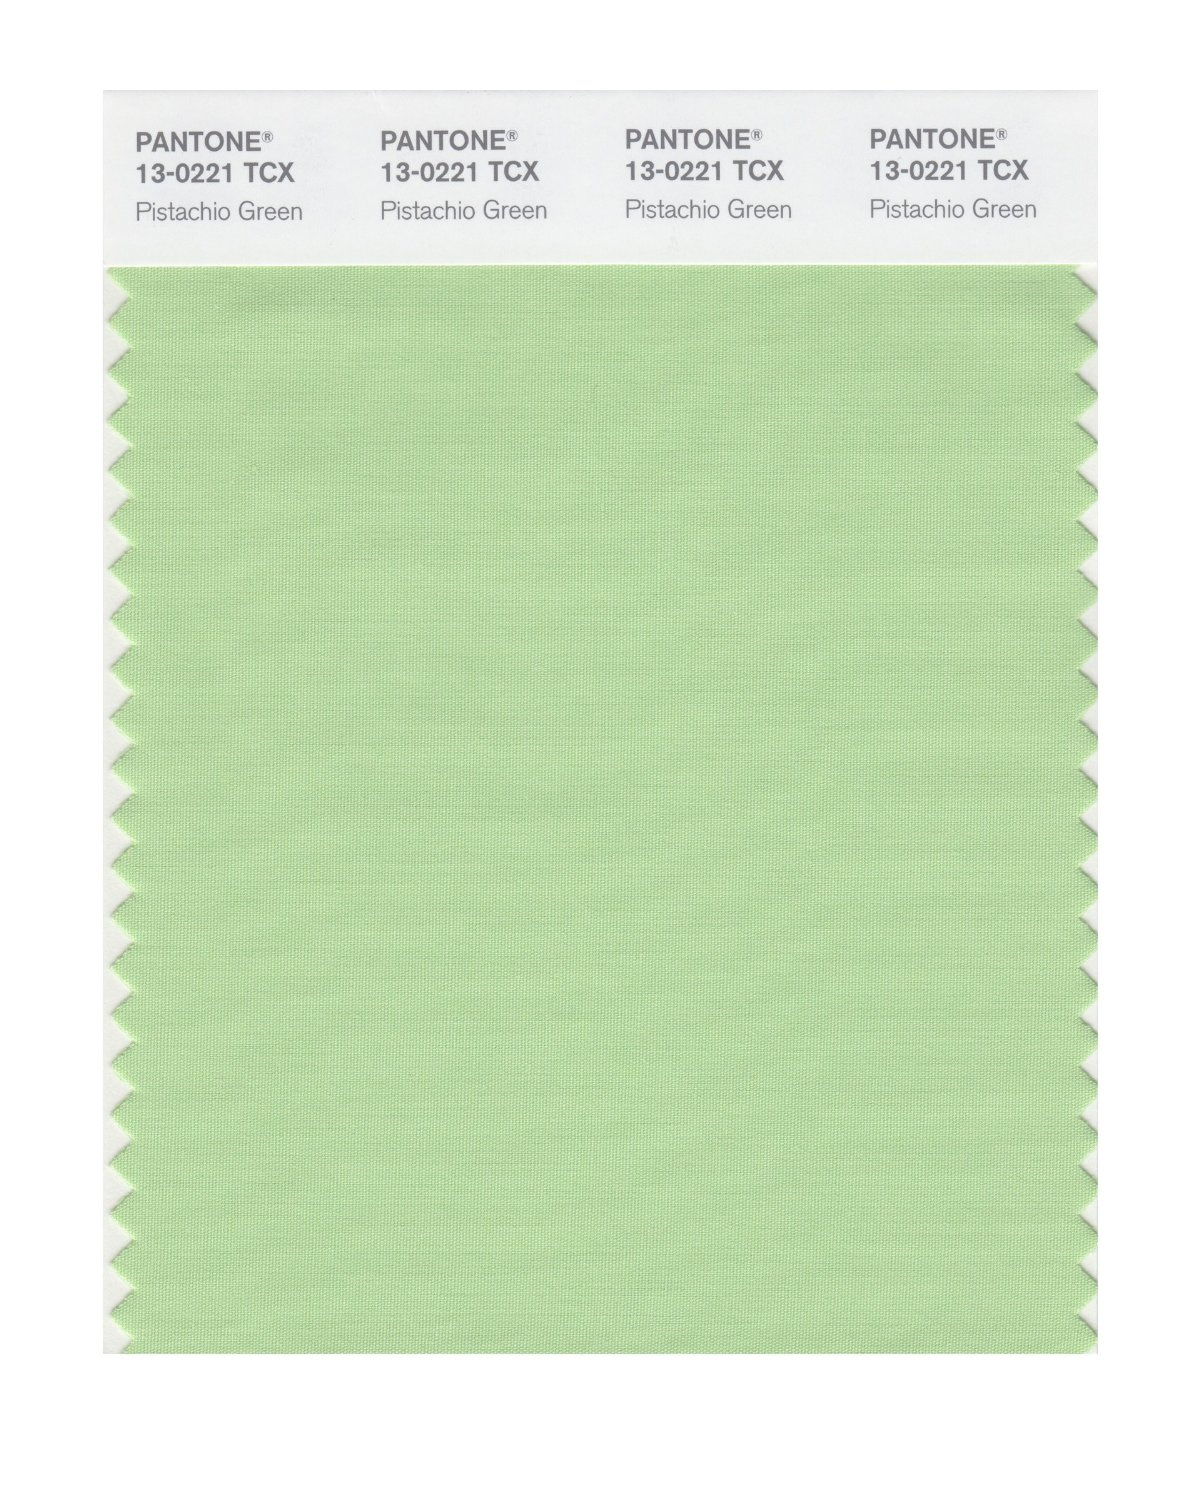 Pantone Smart Swatch 13-0221 Pistachio Green